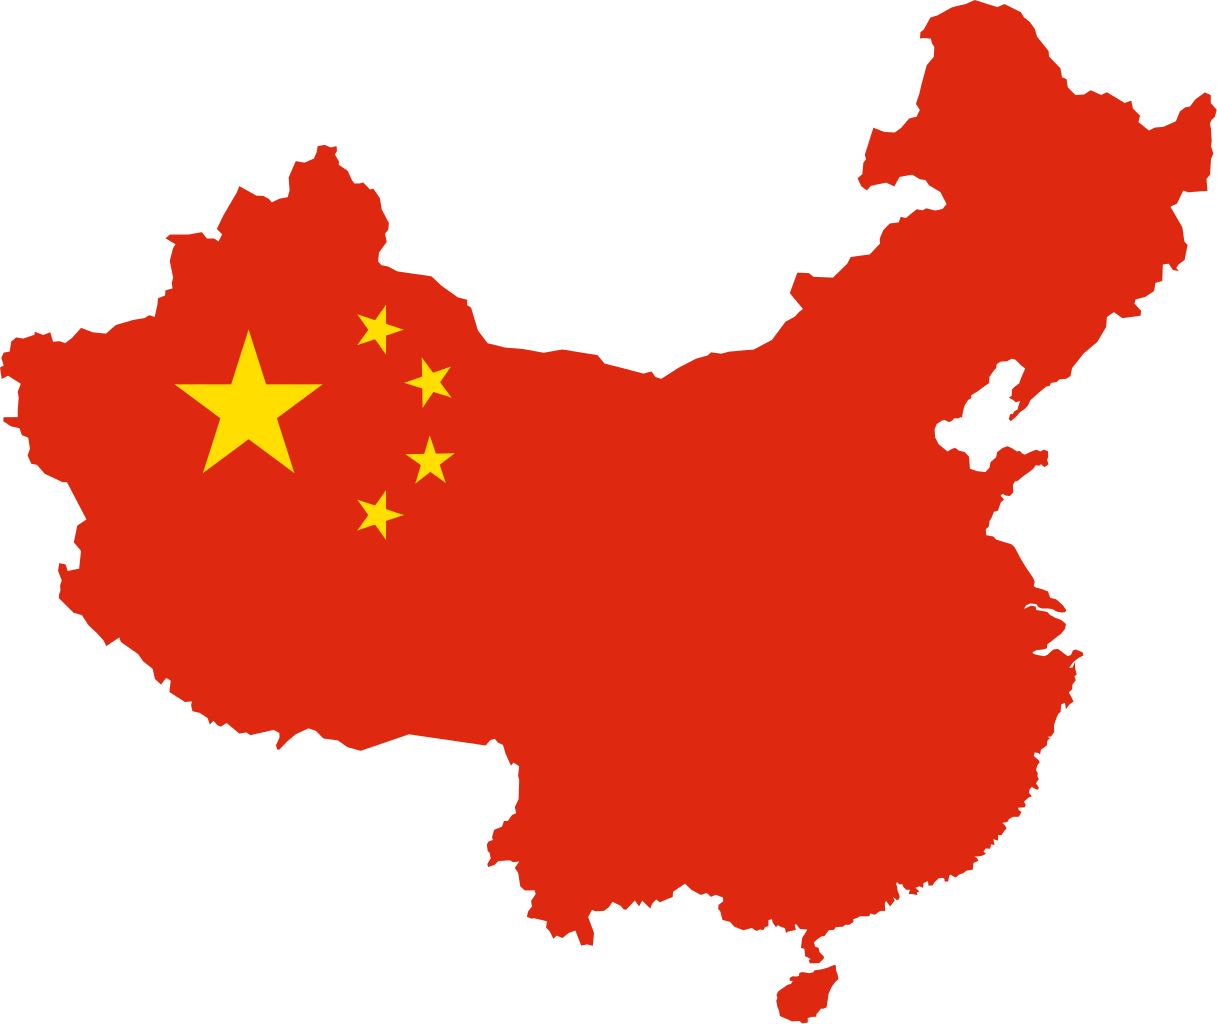 flag-map_of_the_people_s_republic_of_china_svg.png